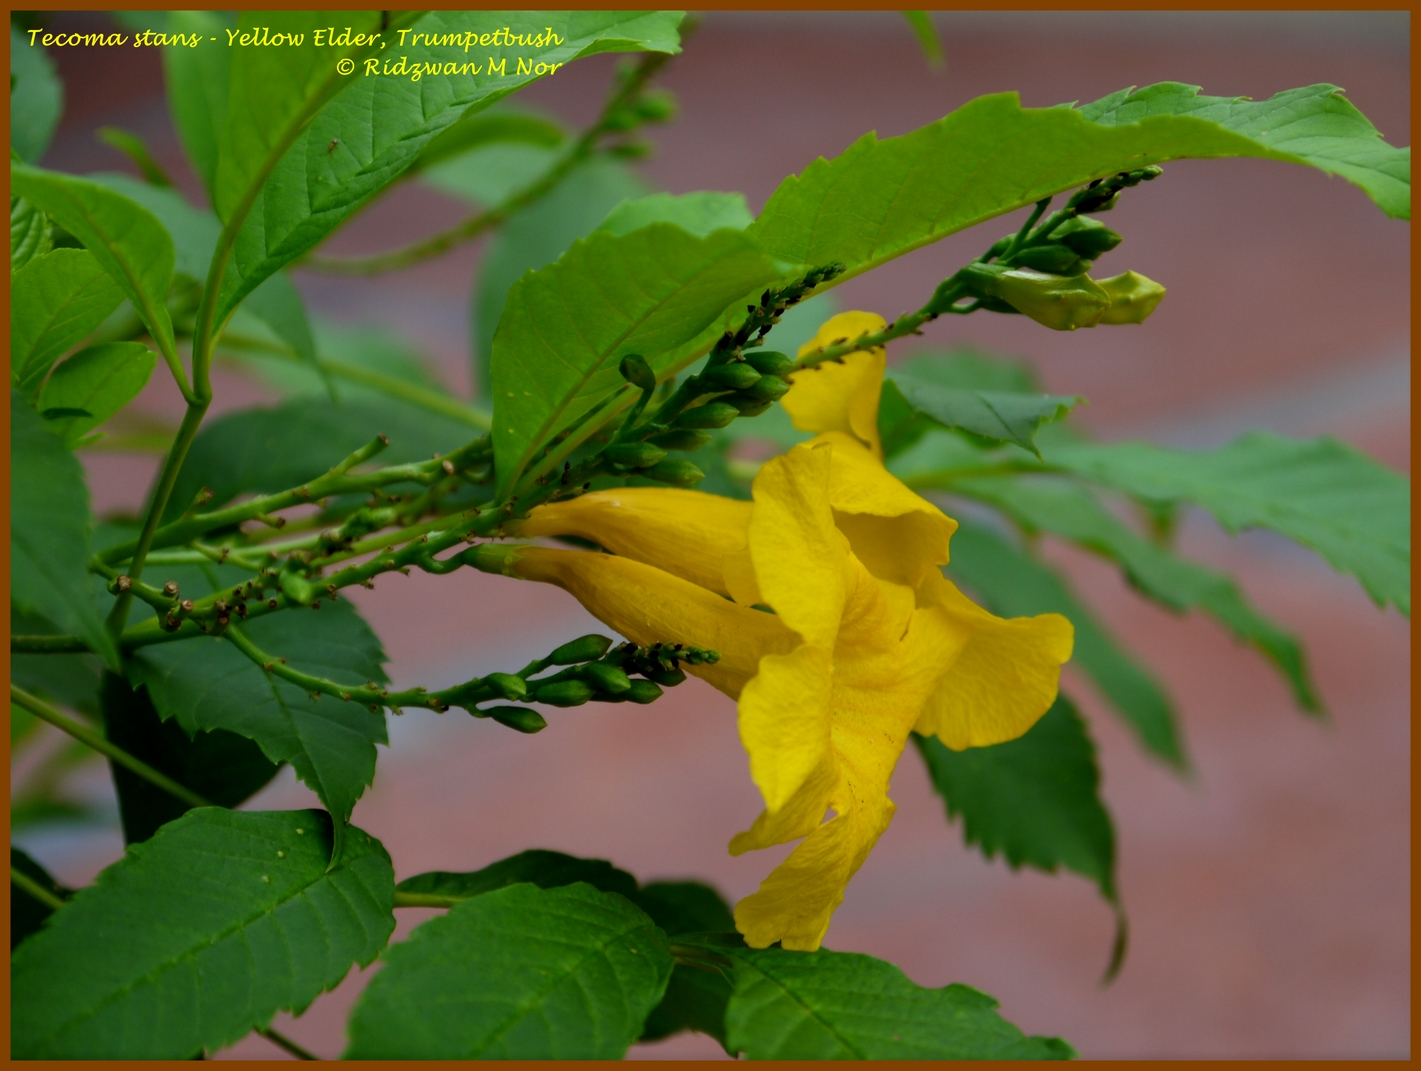 Tecoma Stans Yellow Elder Trumpetbush Flowers Around Us By